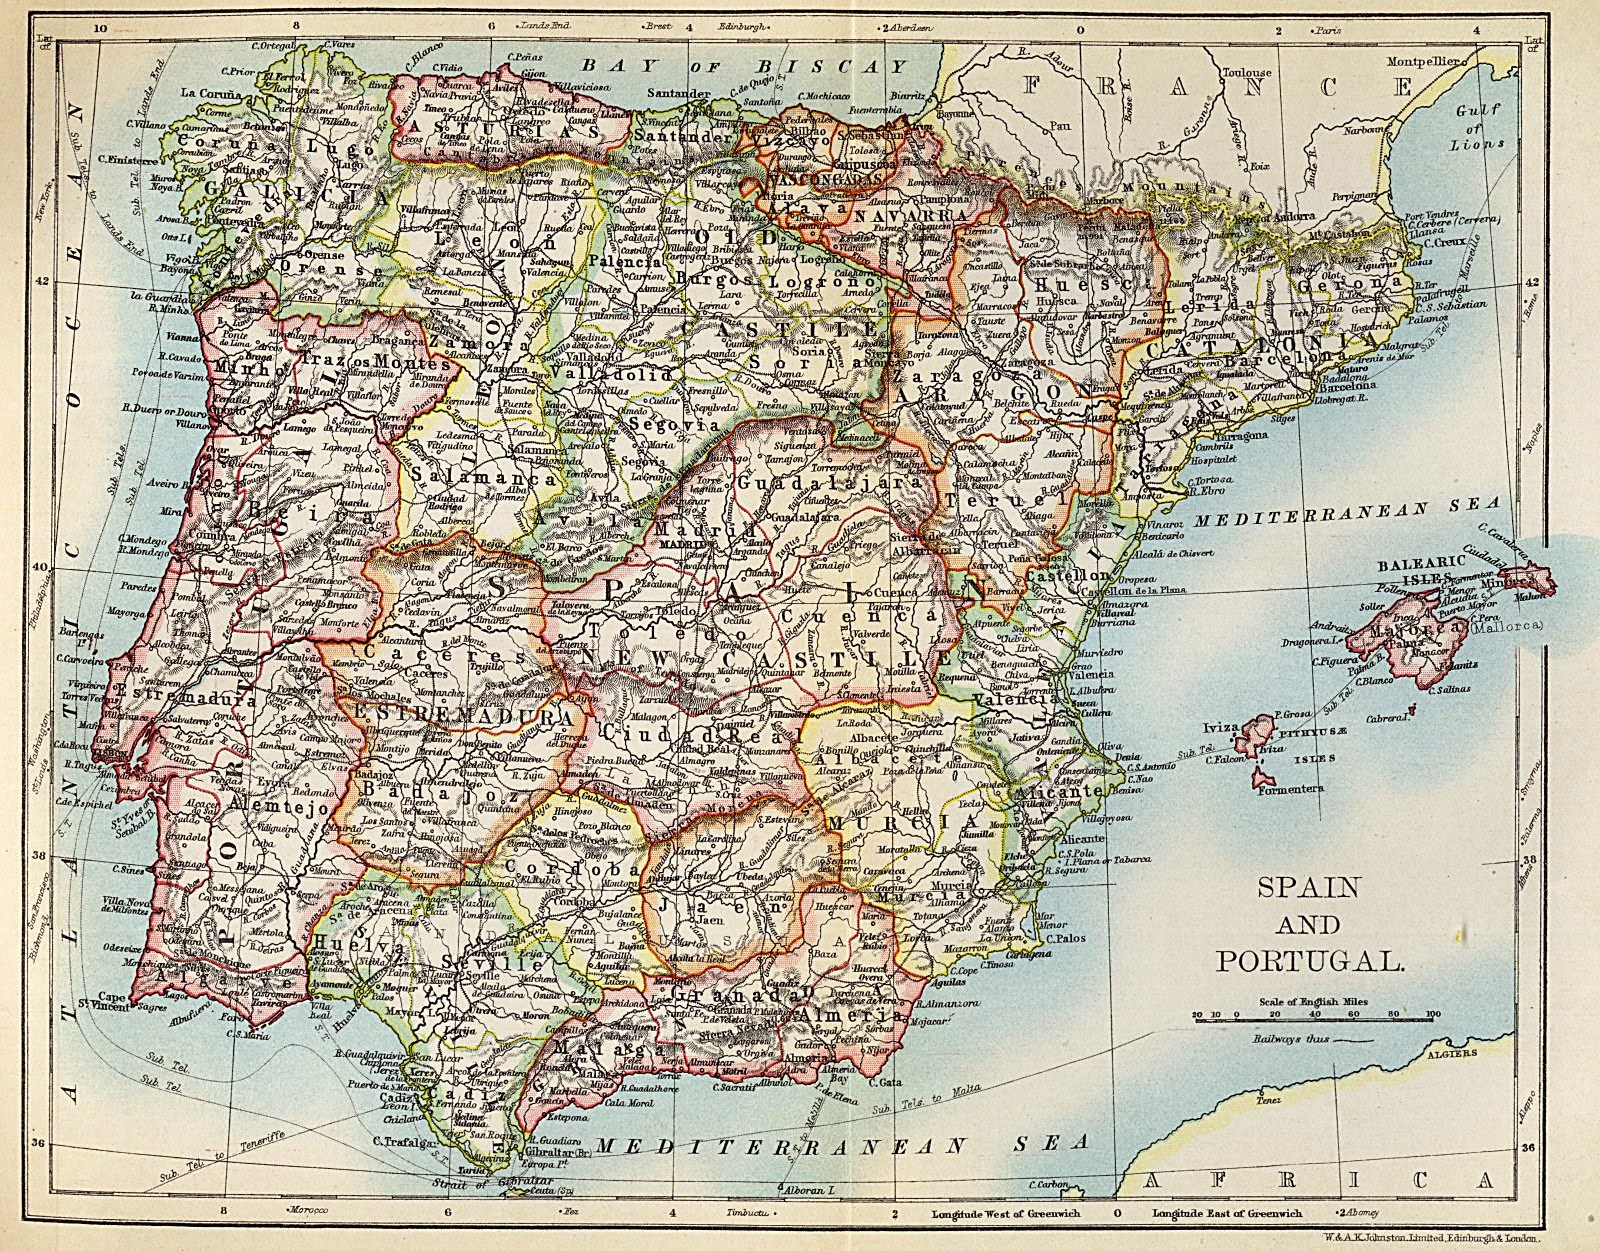 Spain and Portugal 1905 Alexander Keith Johnston